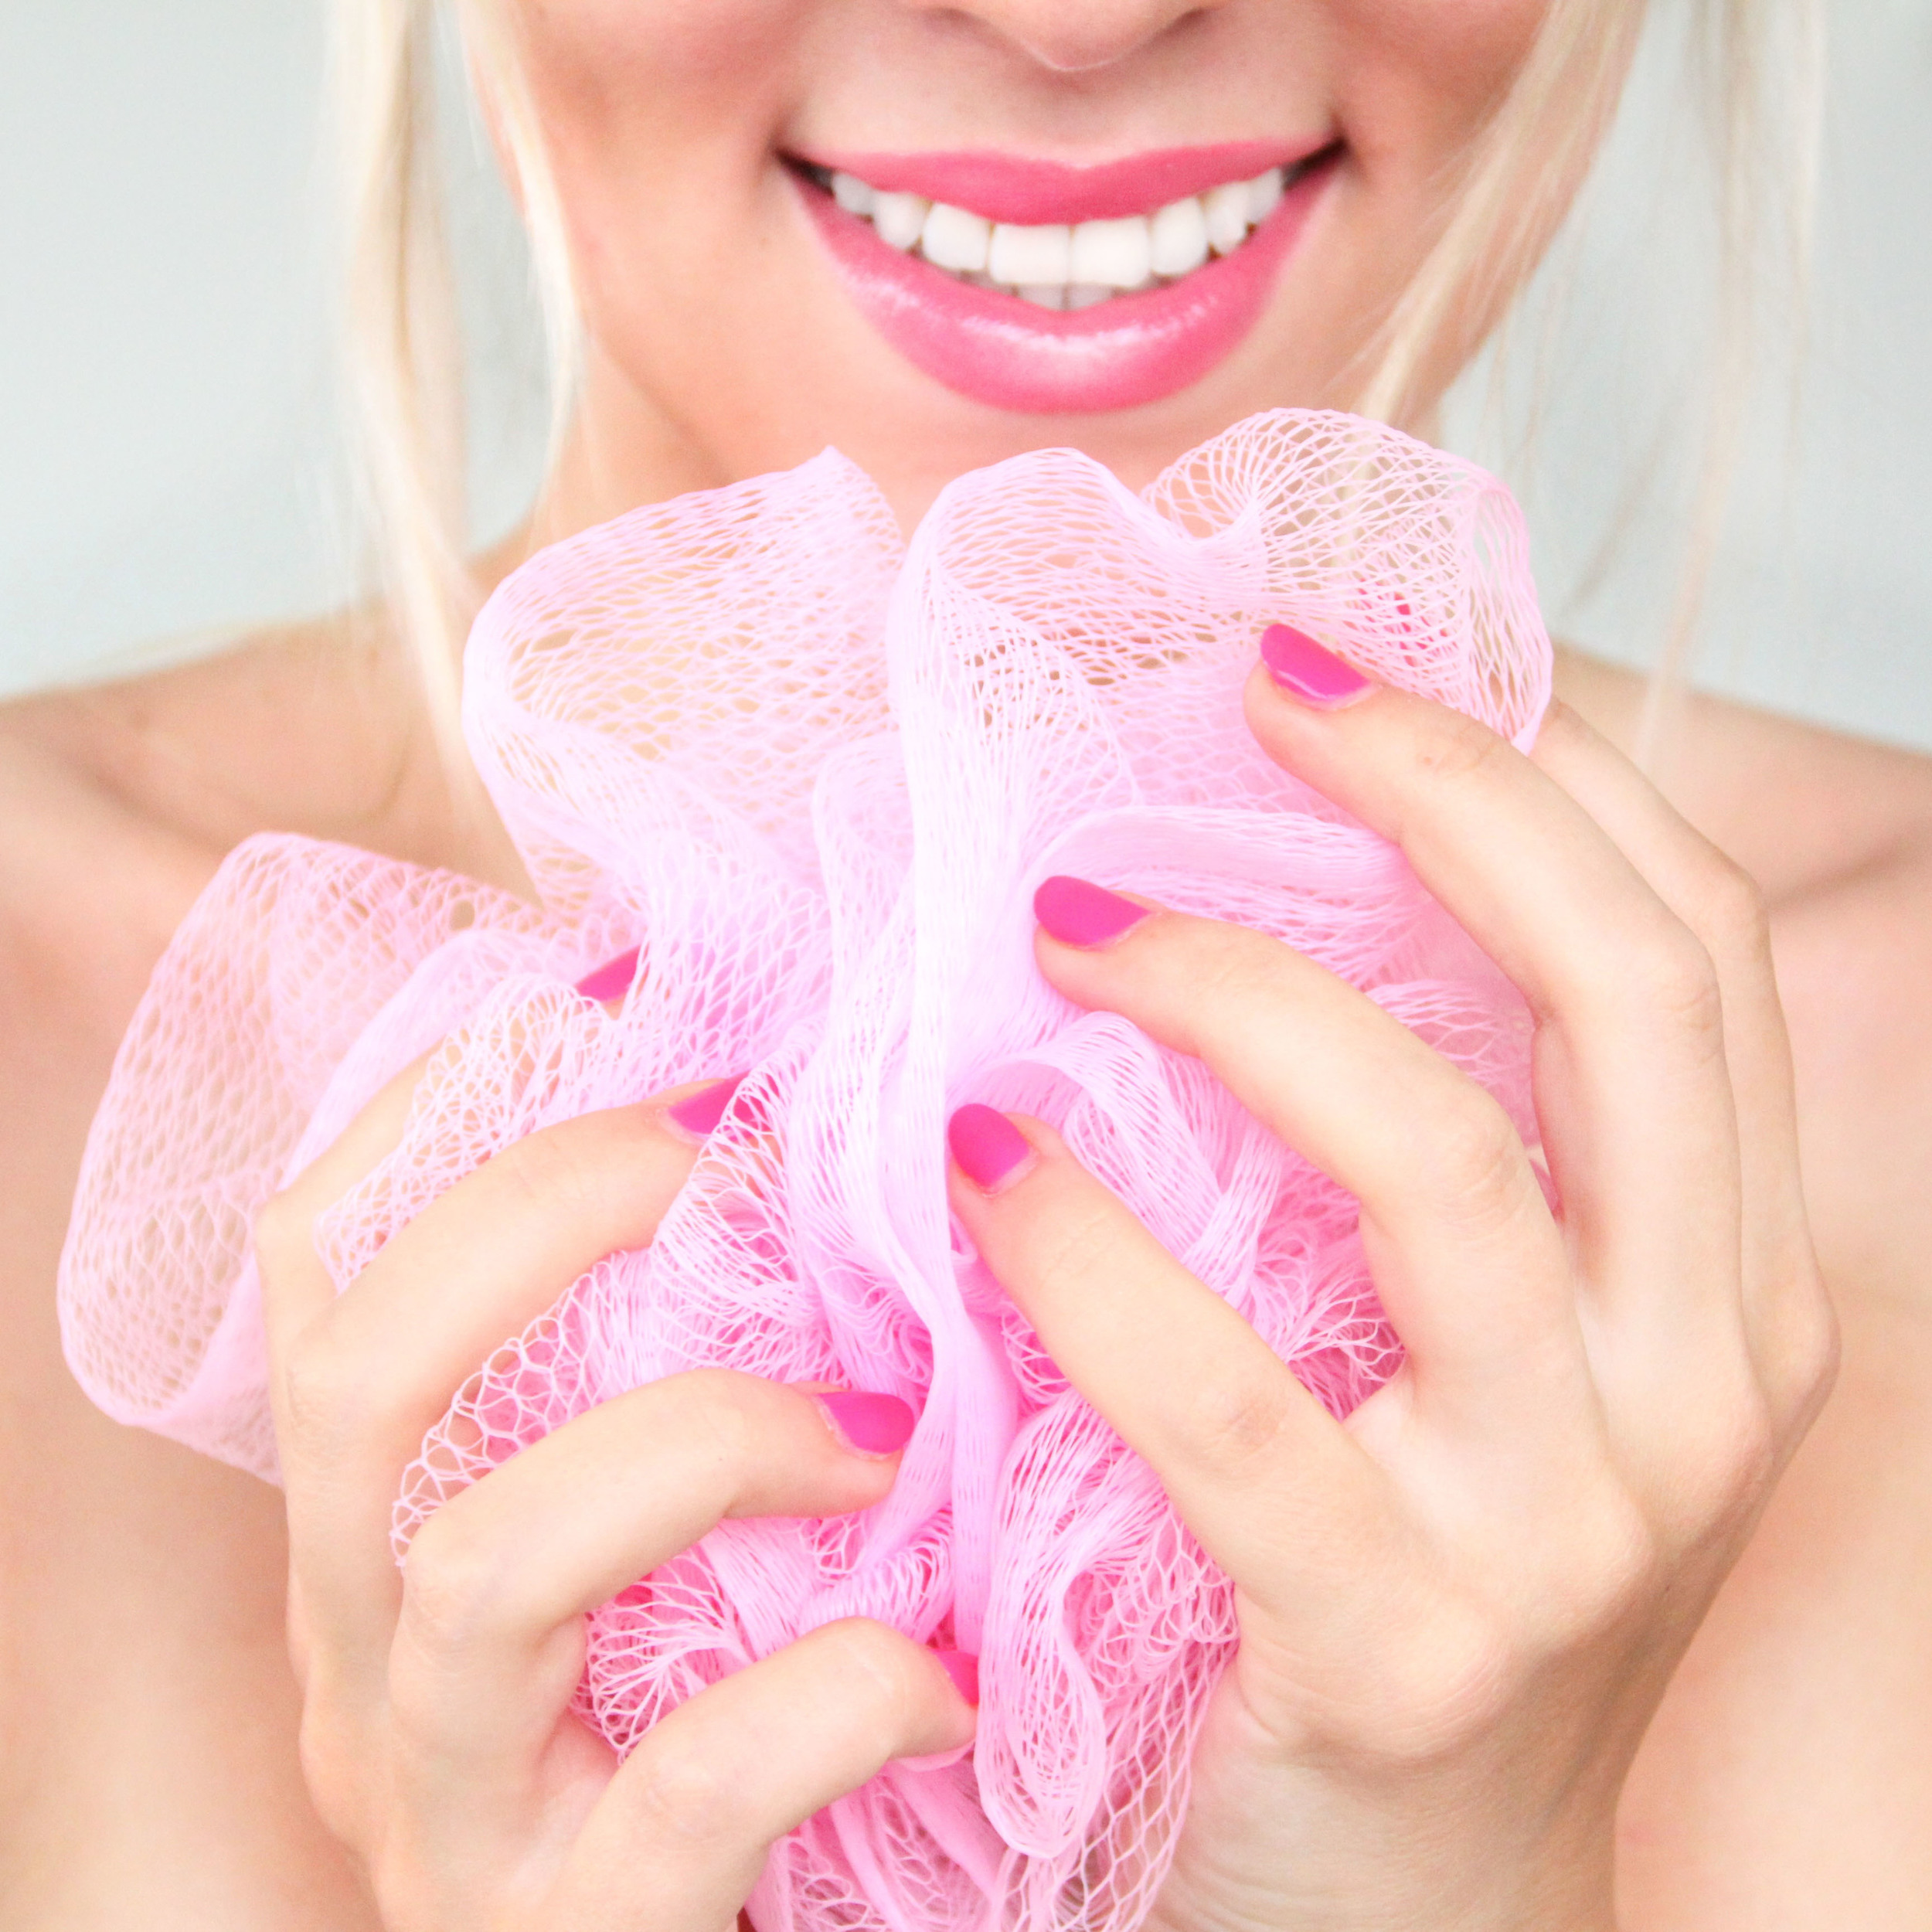 pink nails pink looter pink lips exfoliate skin smooth